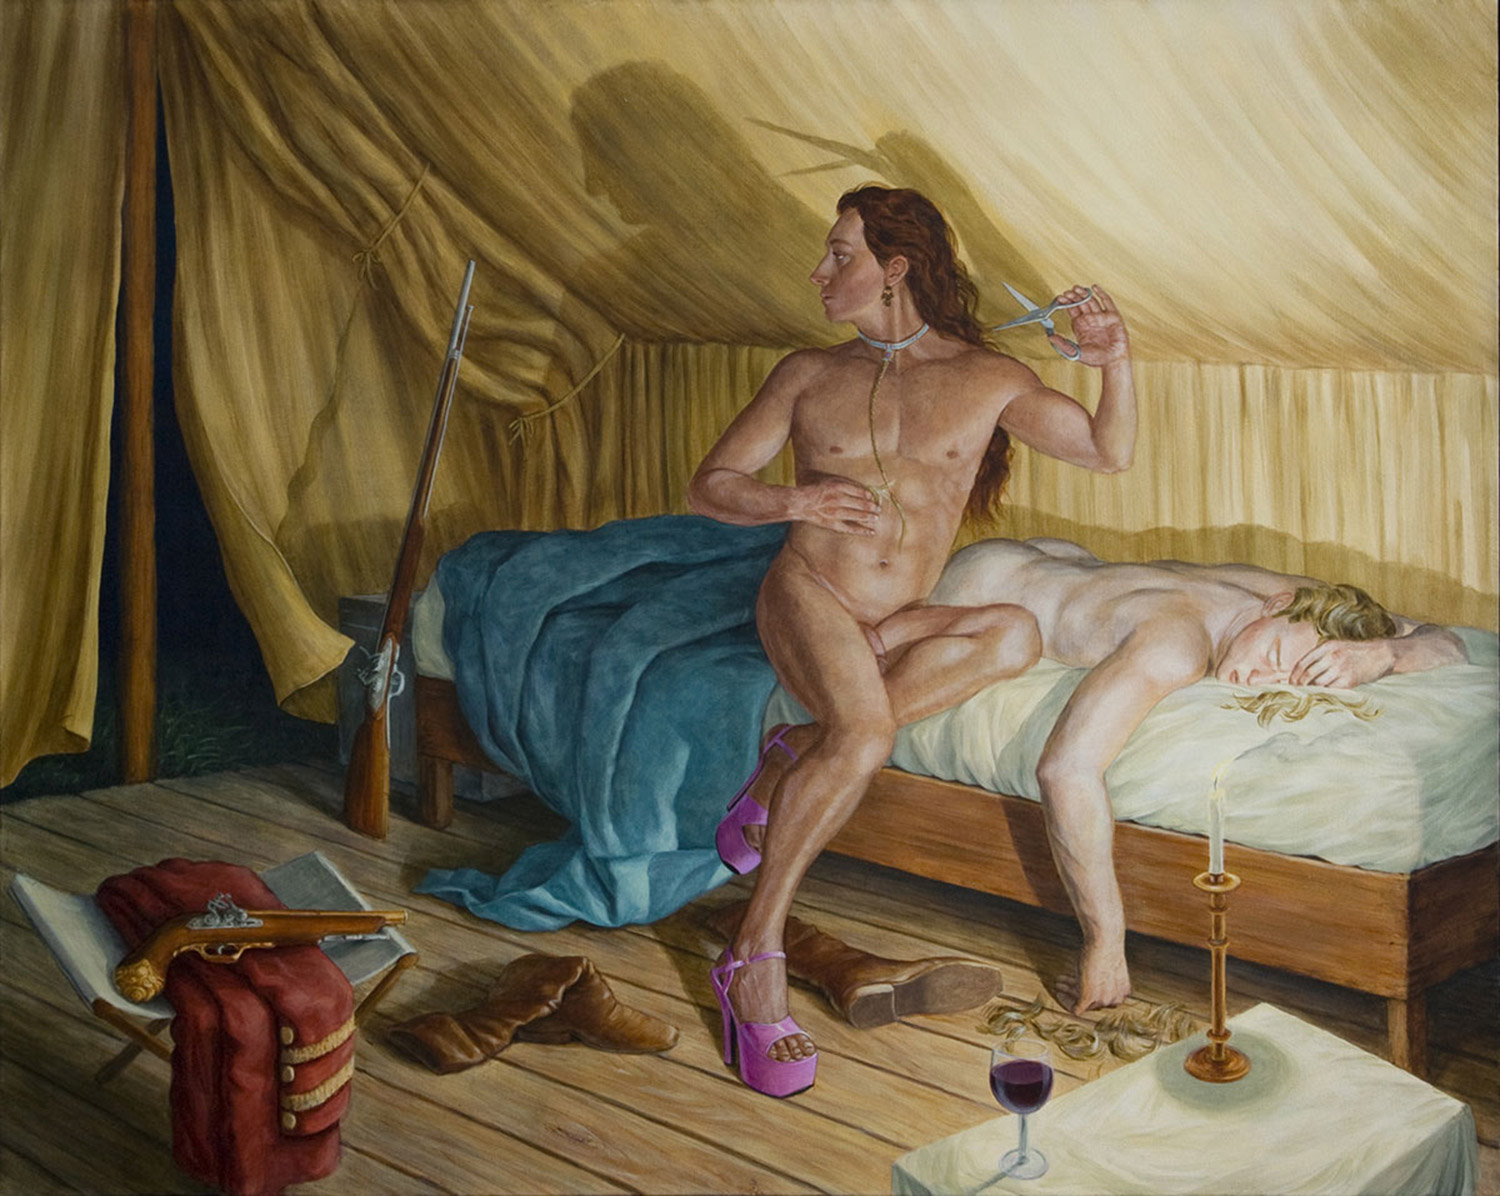 Kent Monkman - historic drag painting